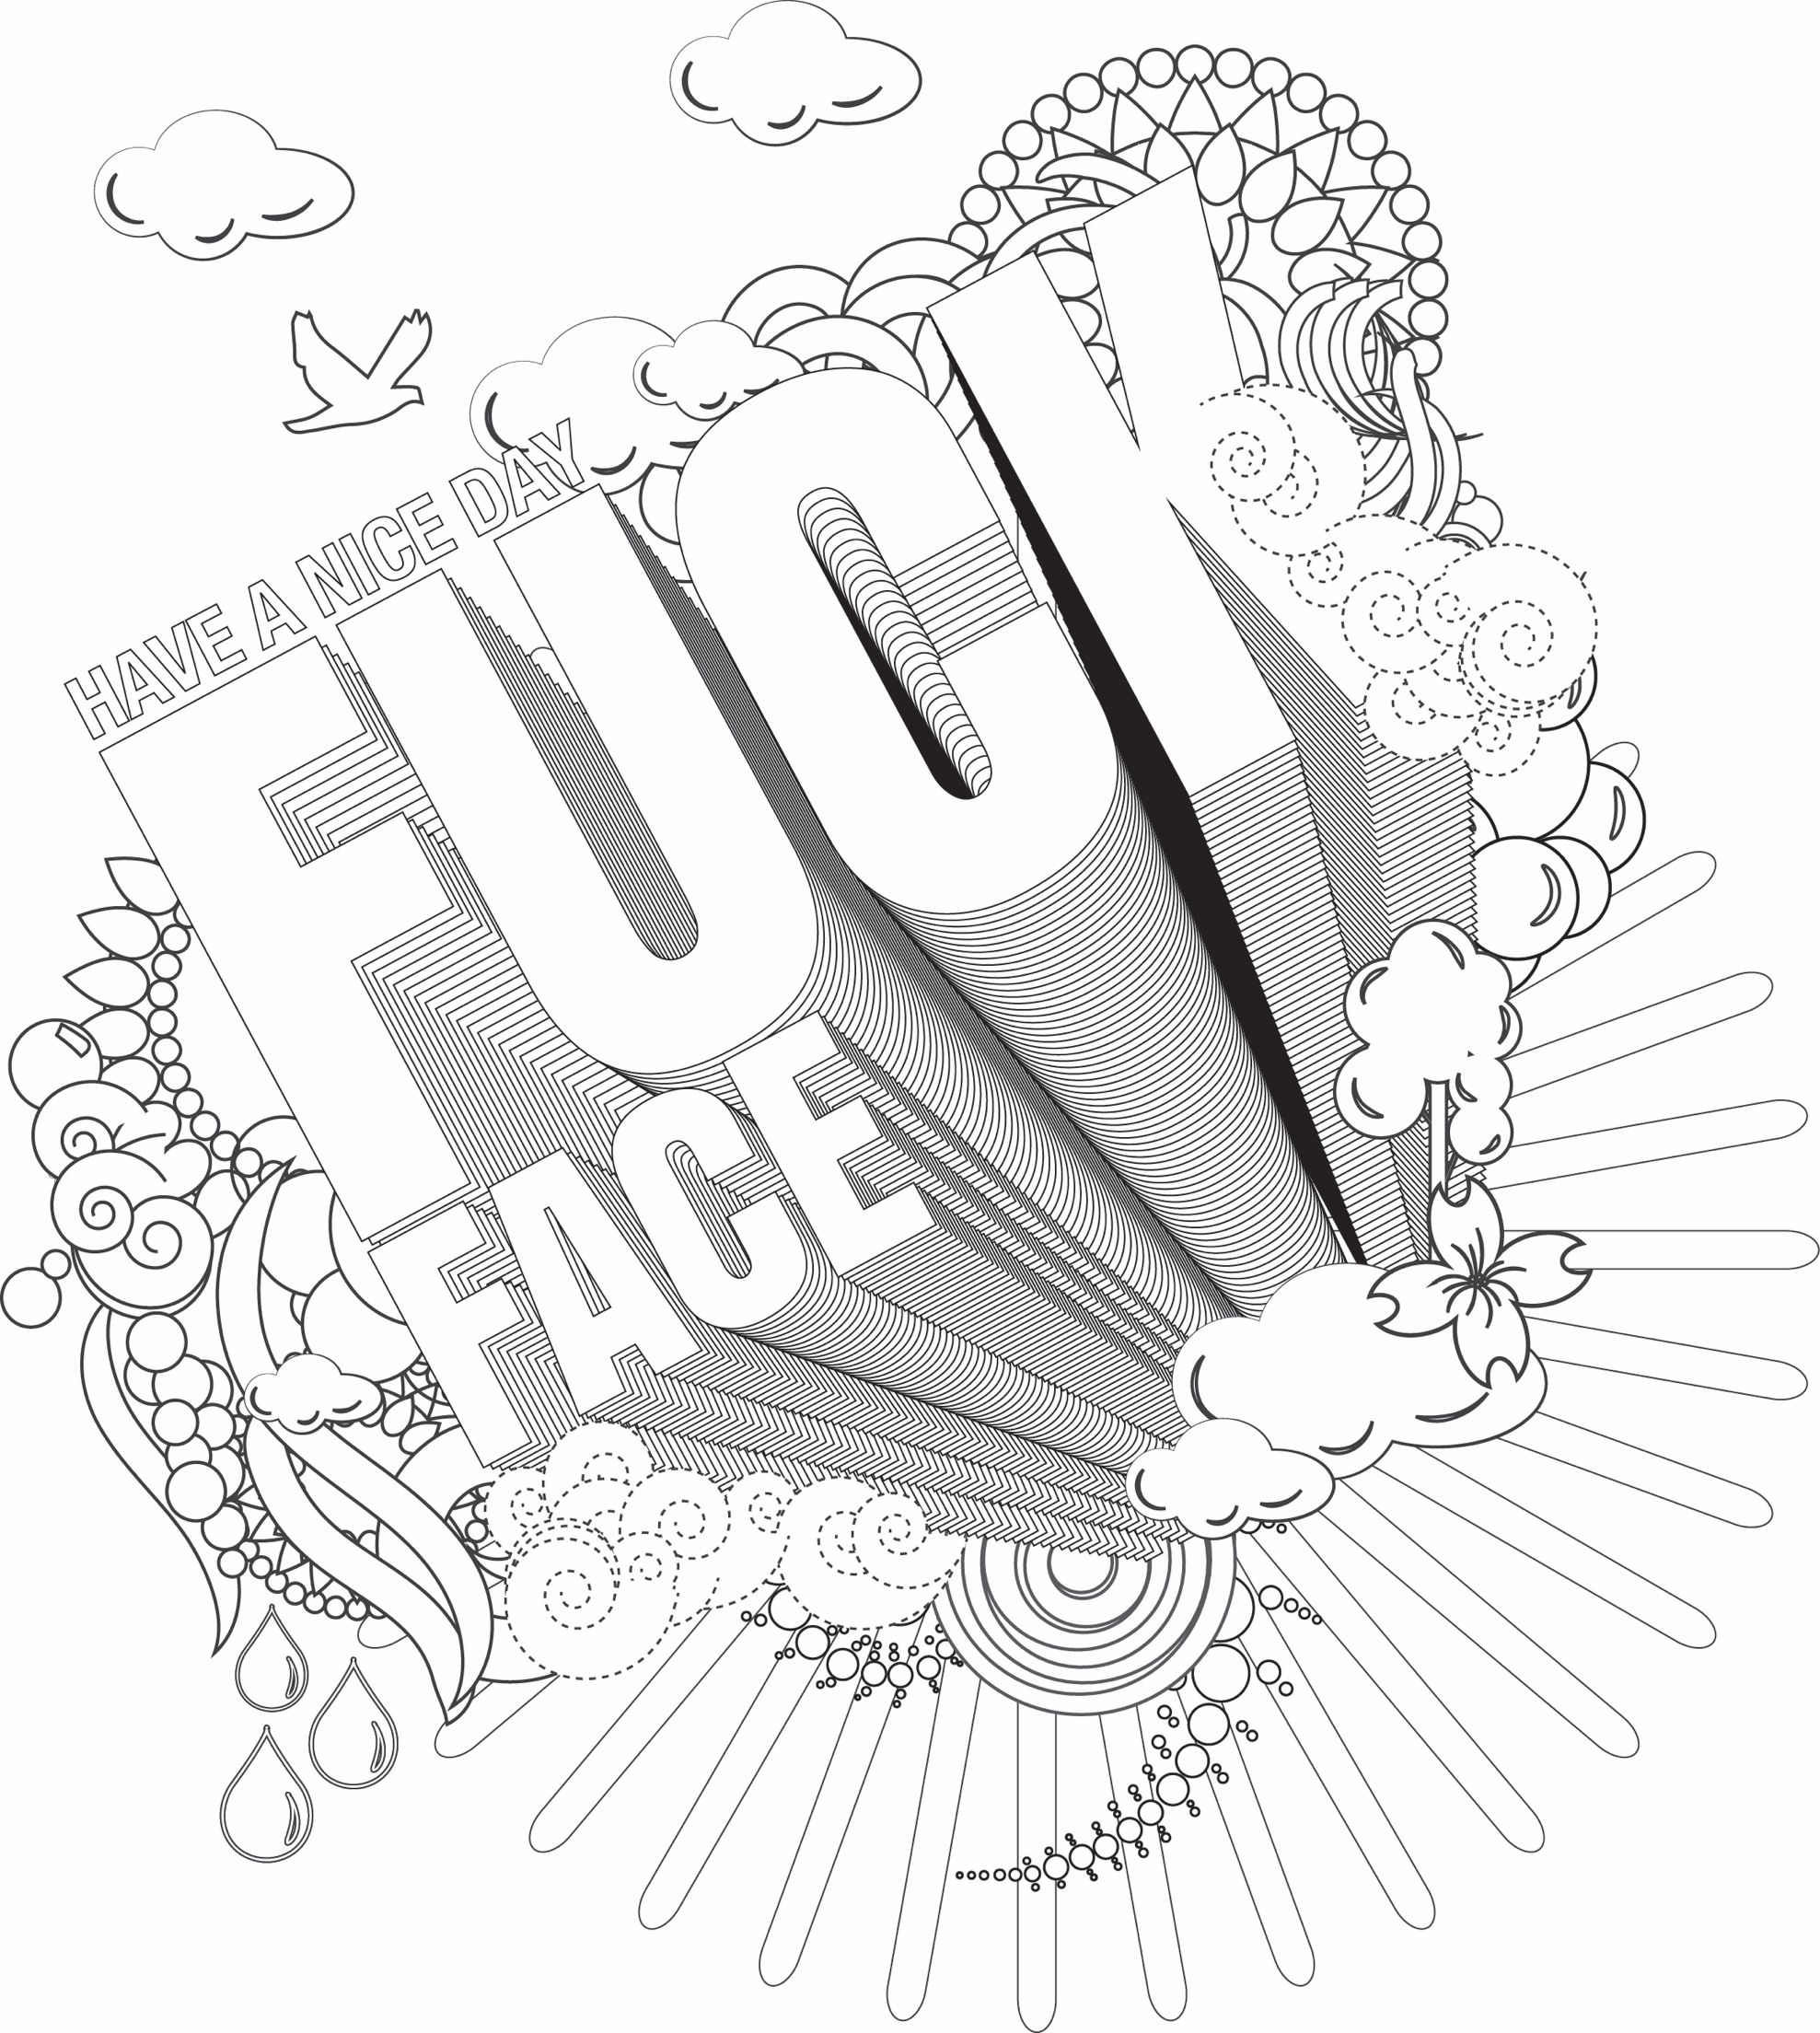 FREE Adult Language Coloring Sheet For Your Adult Coloring And